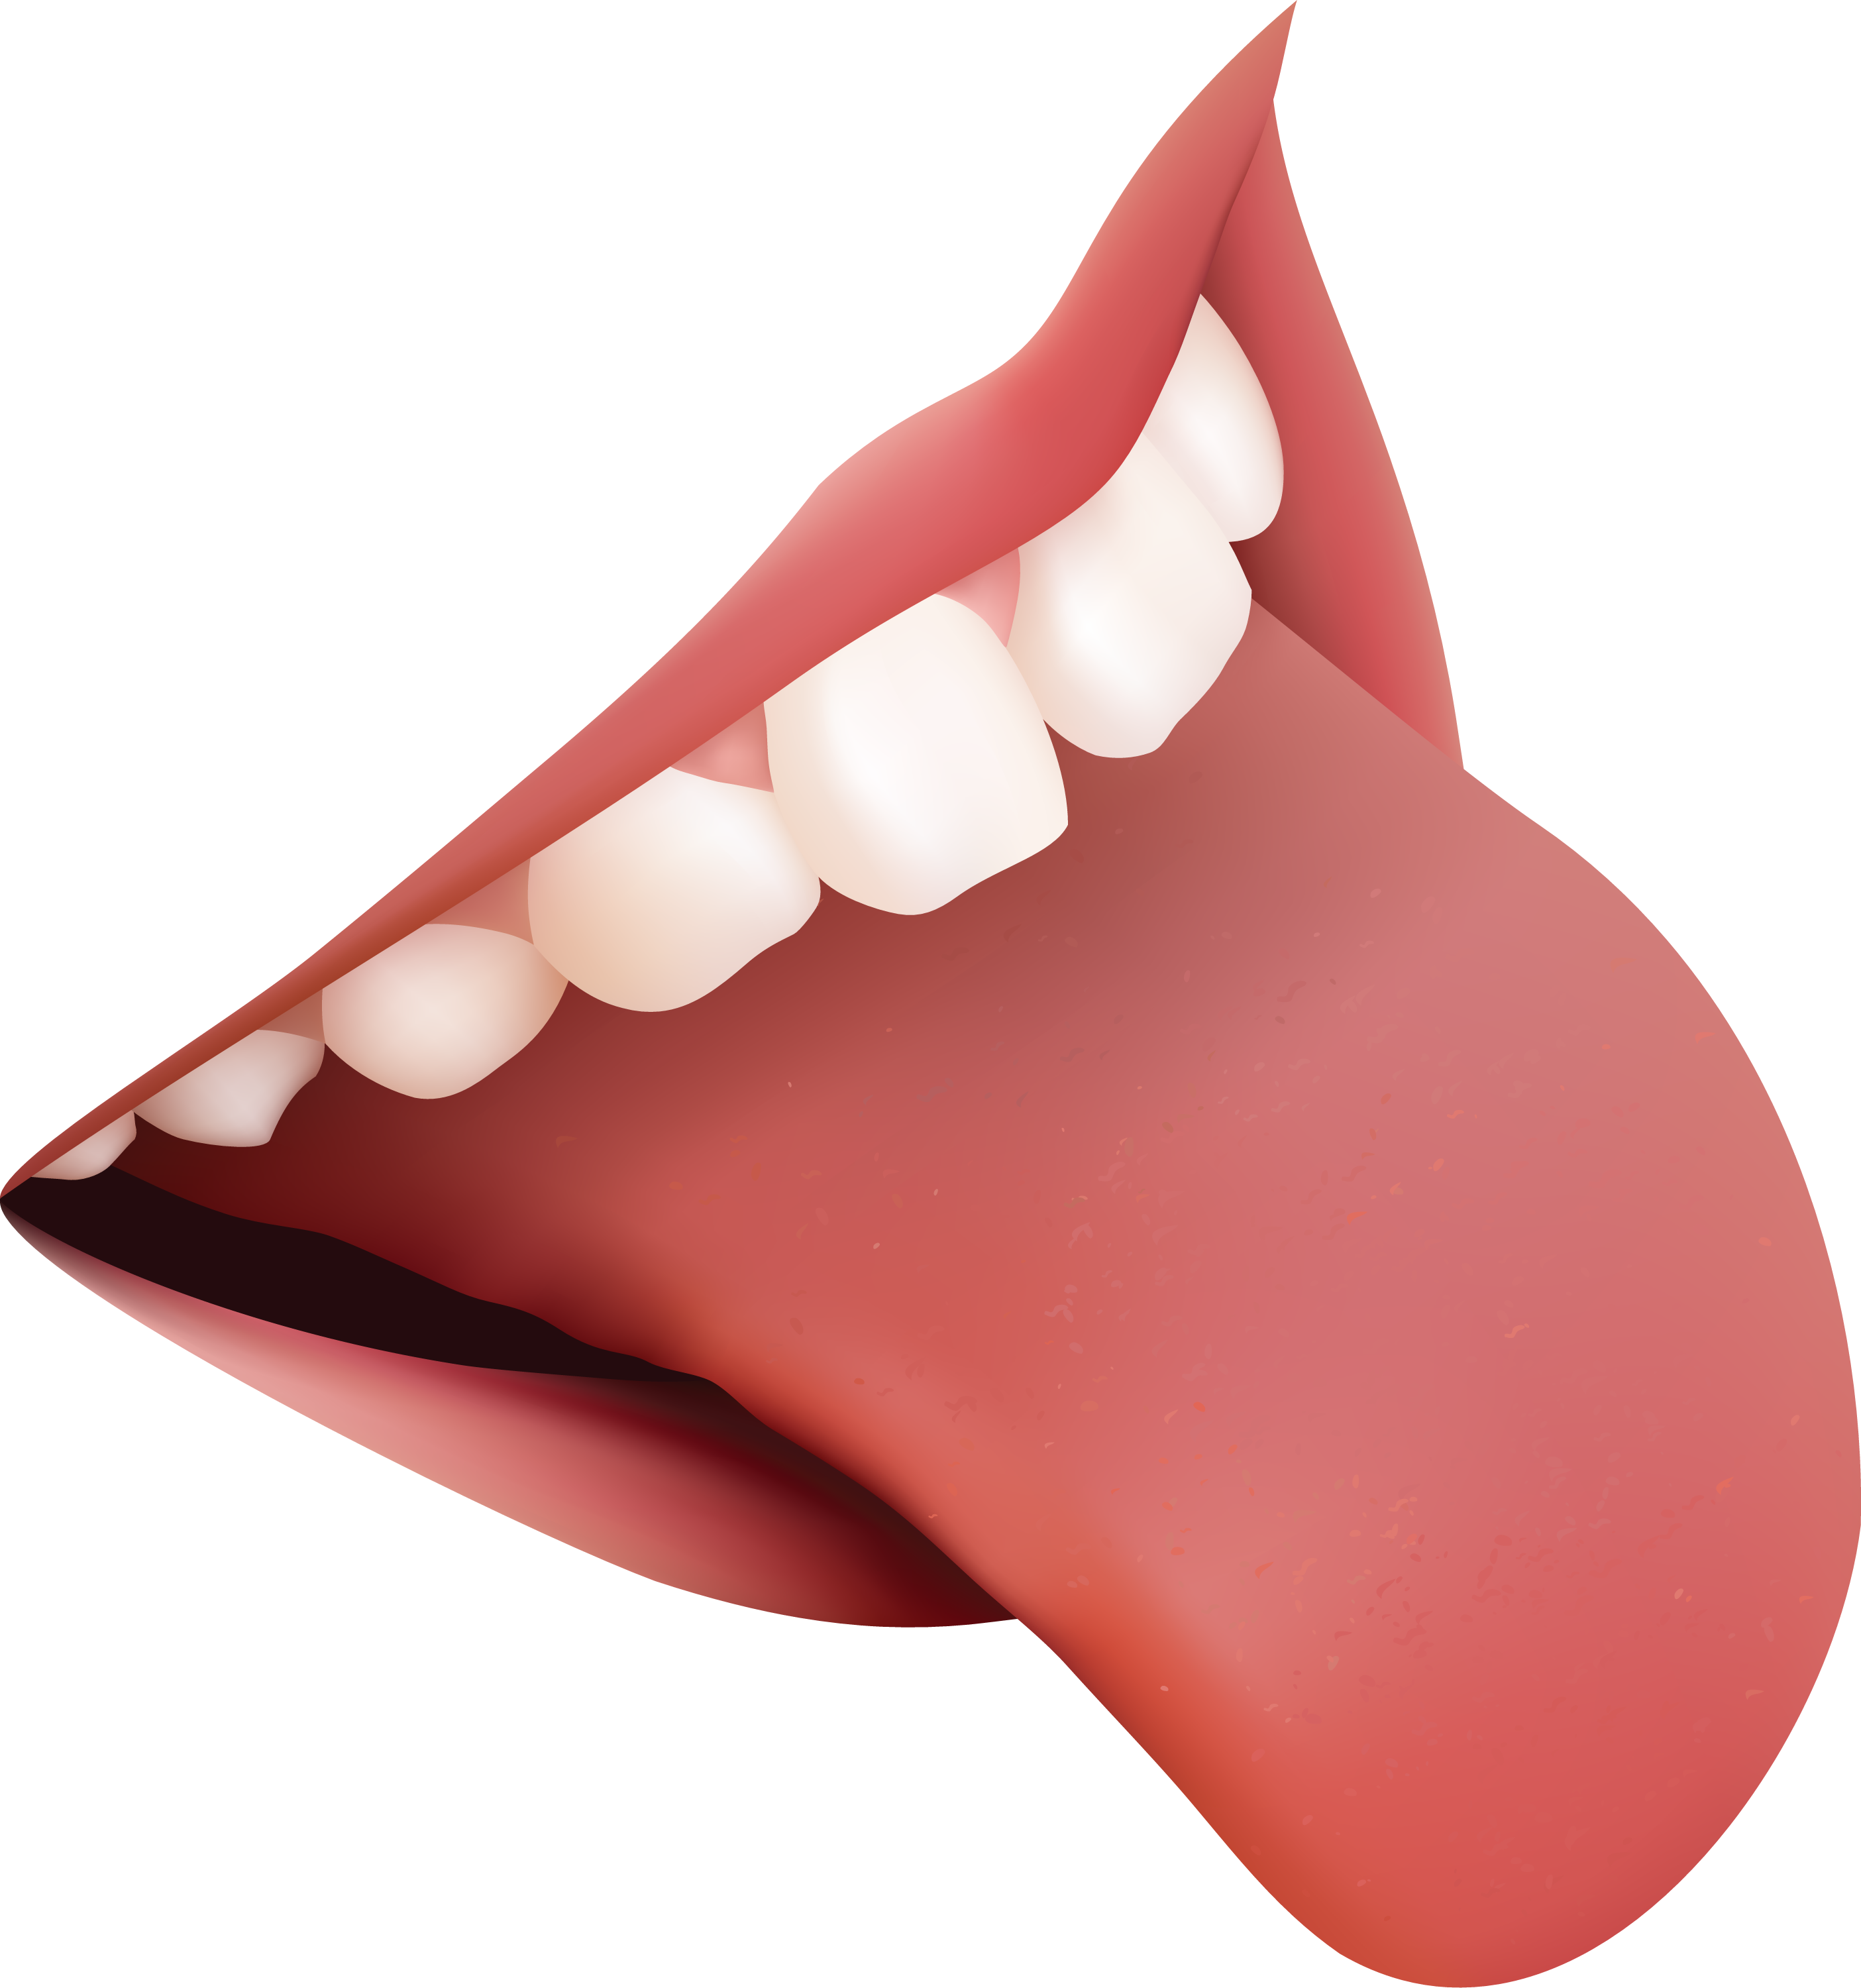 Tongue png. Images free download